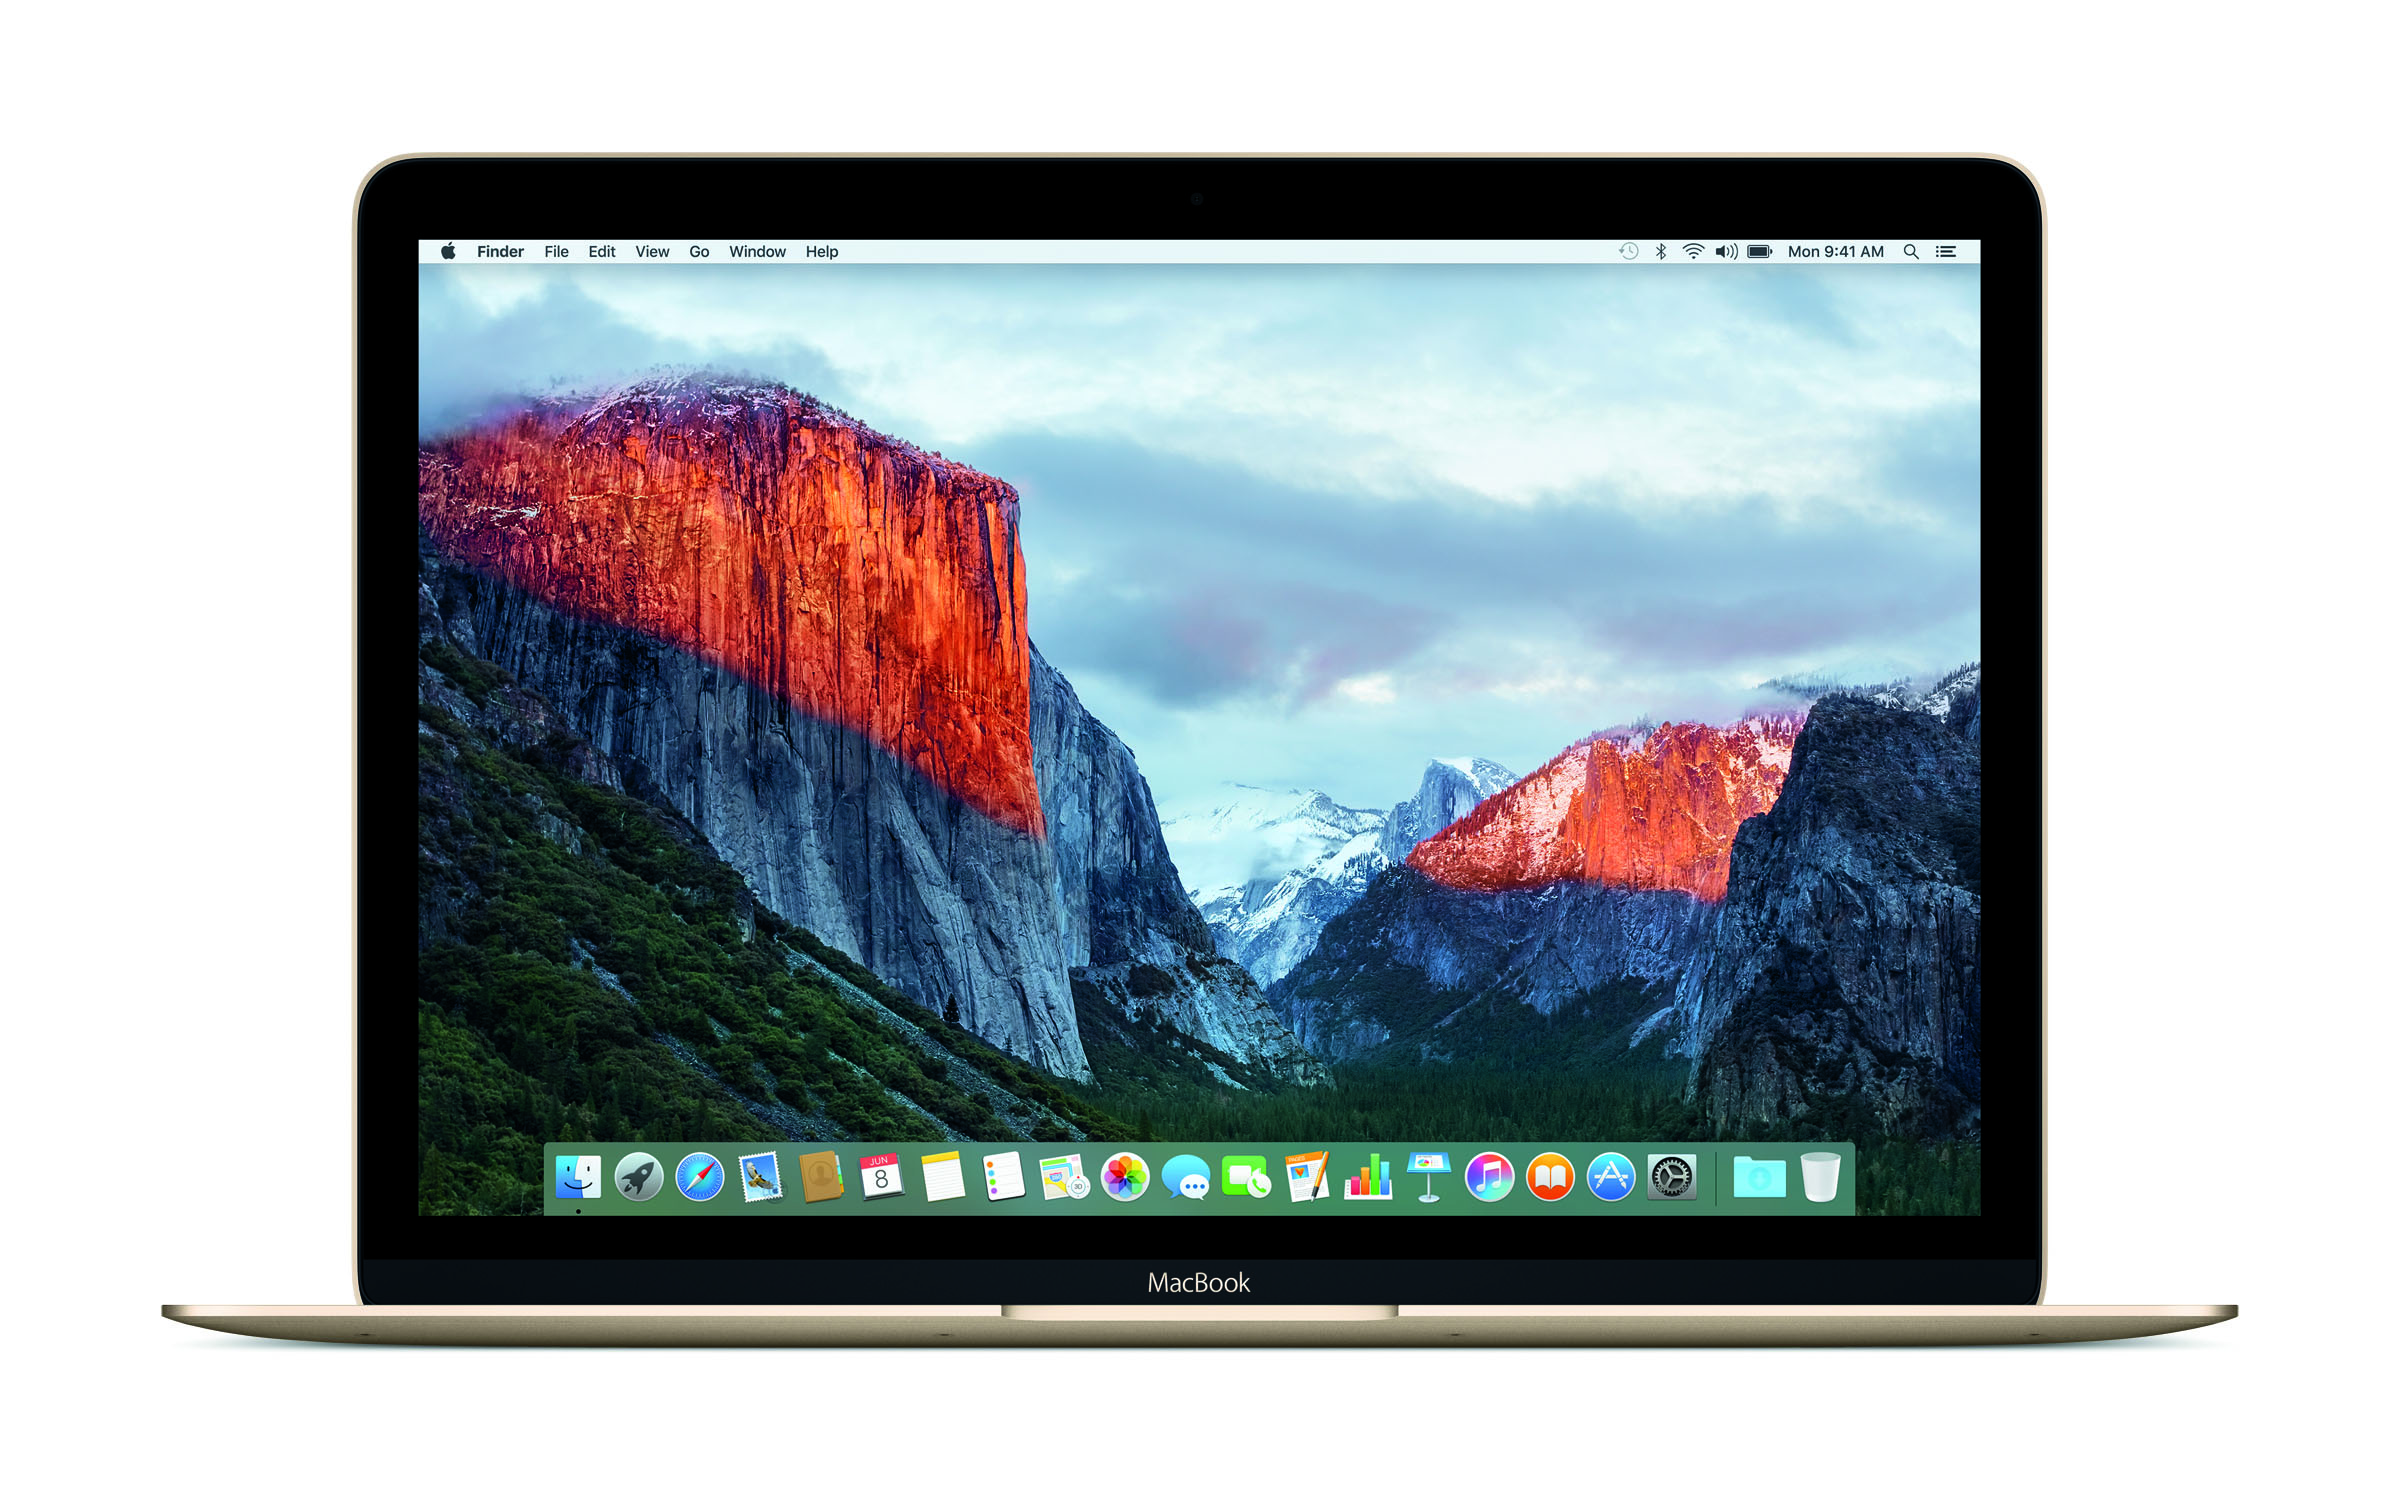 Mac OS X El Capitan - 2